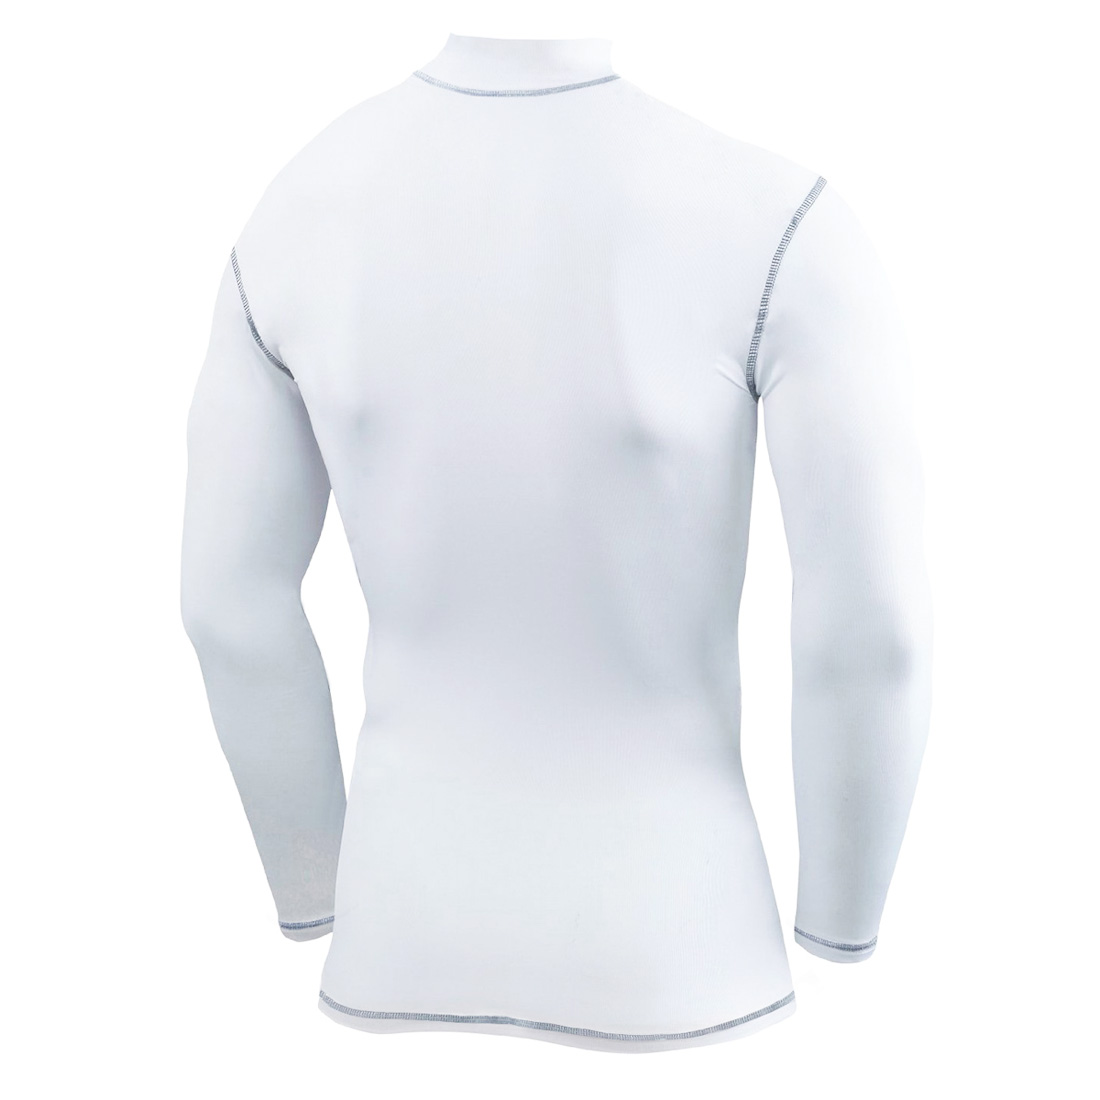 Men's Base Layers | Duluth Trading CompanyMen's & Women's Clothing · Workshop, Gifts & Gear · No Bull Guarantee.